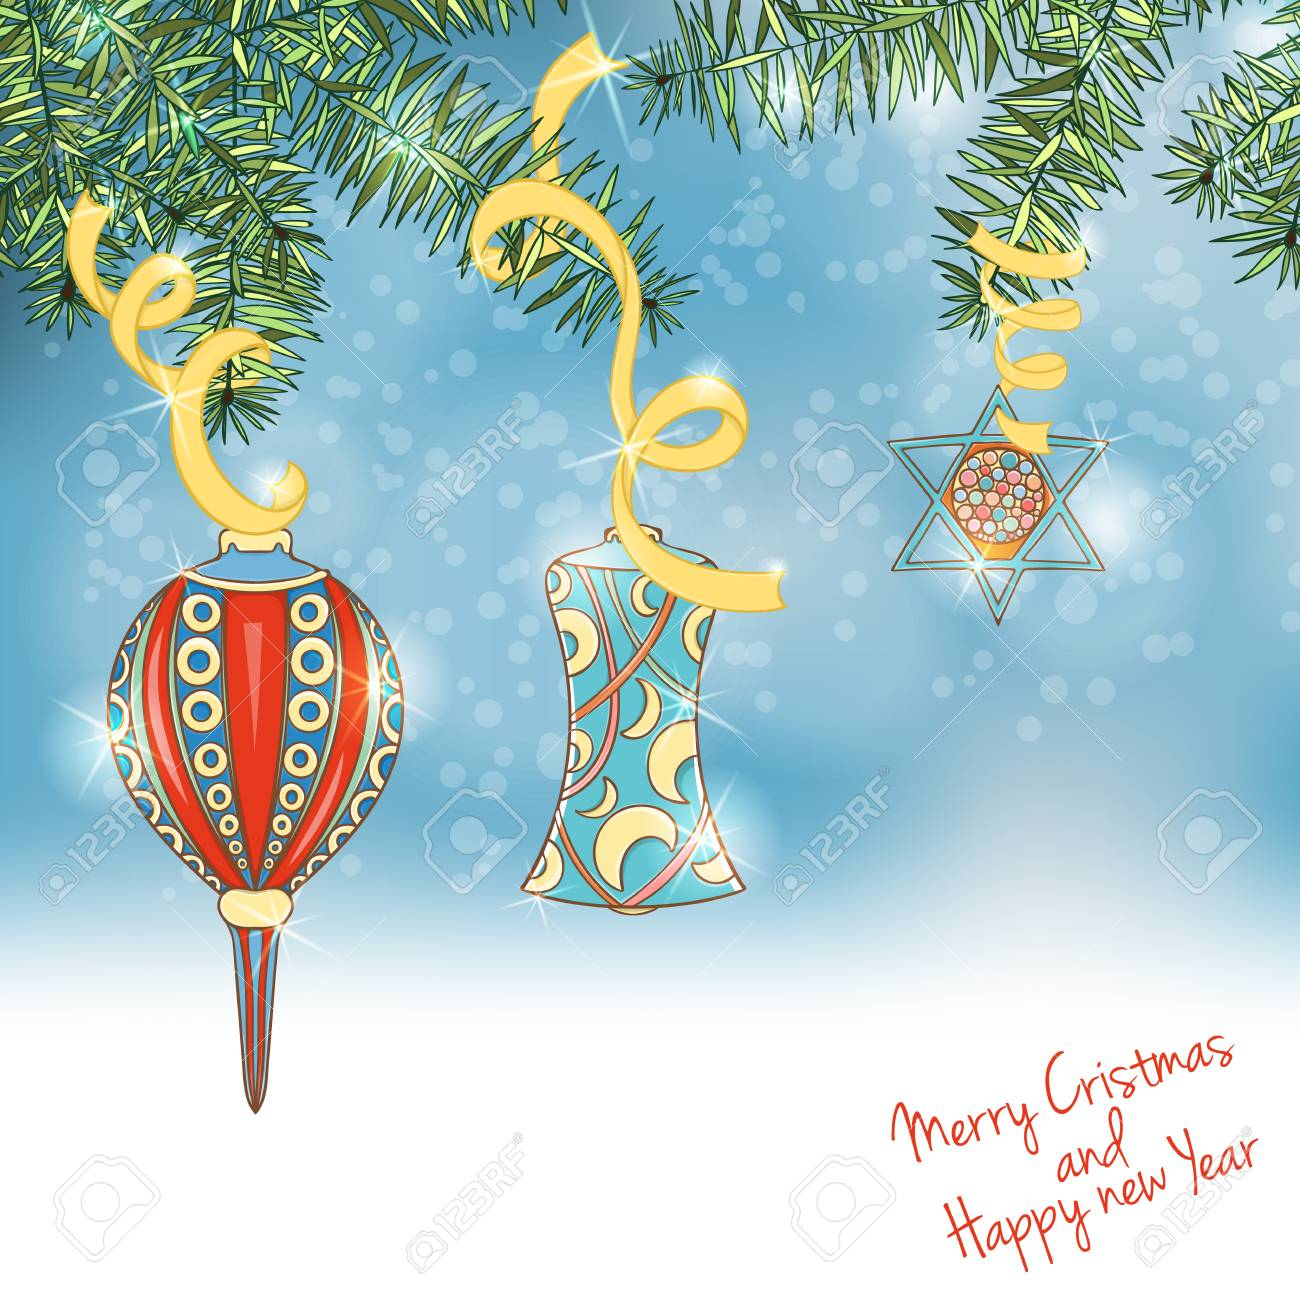 christmas and new year invitation card hand drawn vector illustration of ball on light background